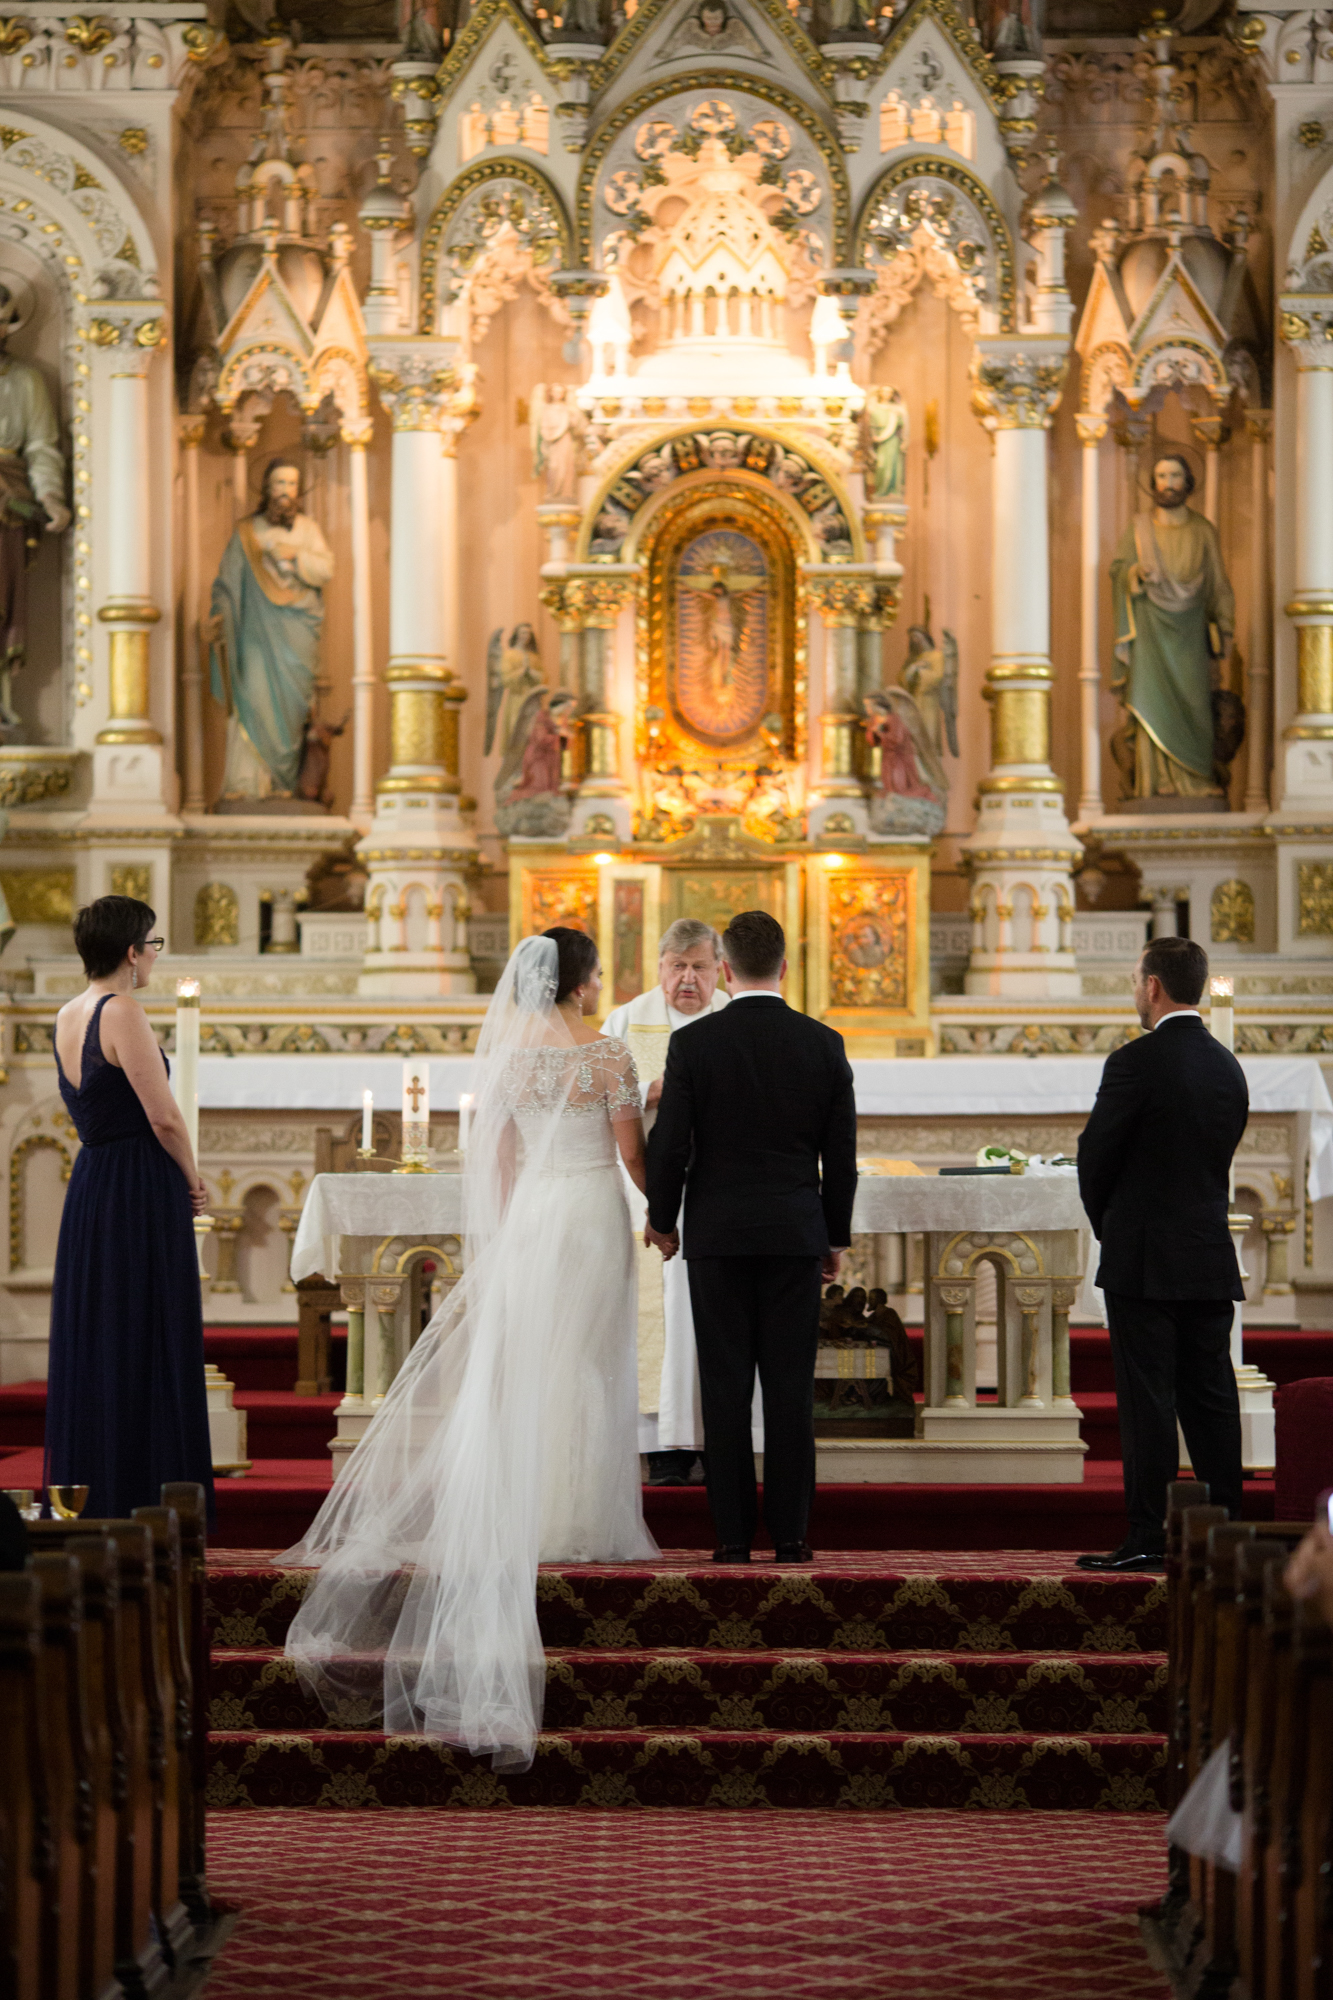 Wedding ceremony at St Michael's in Old Town, Chicago